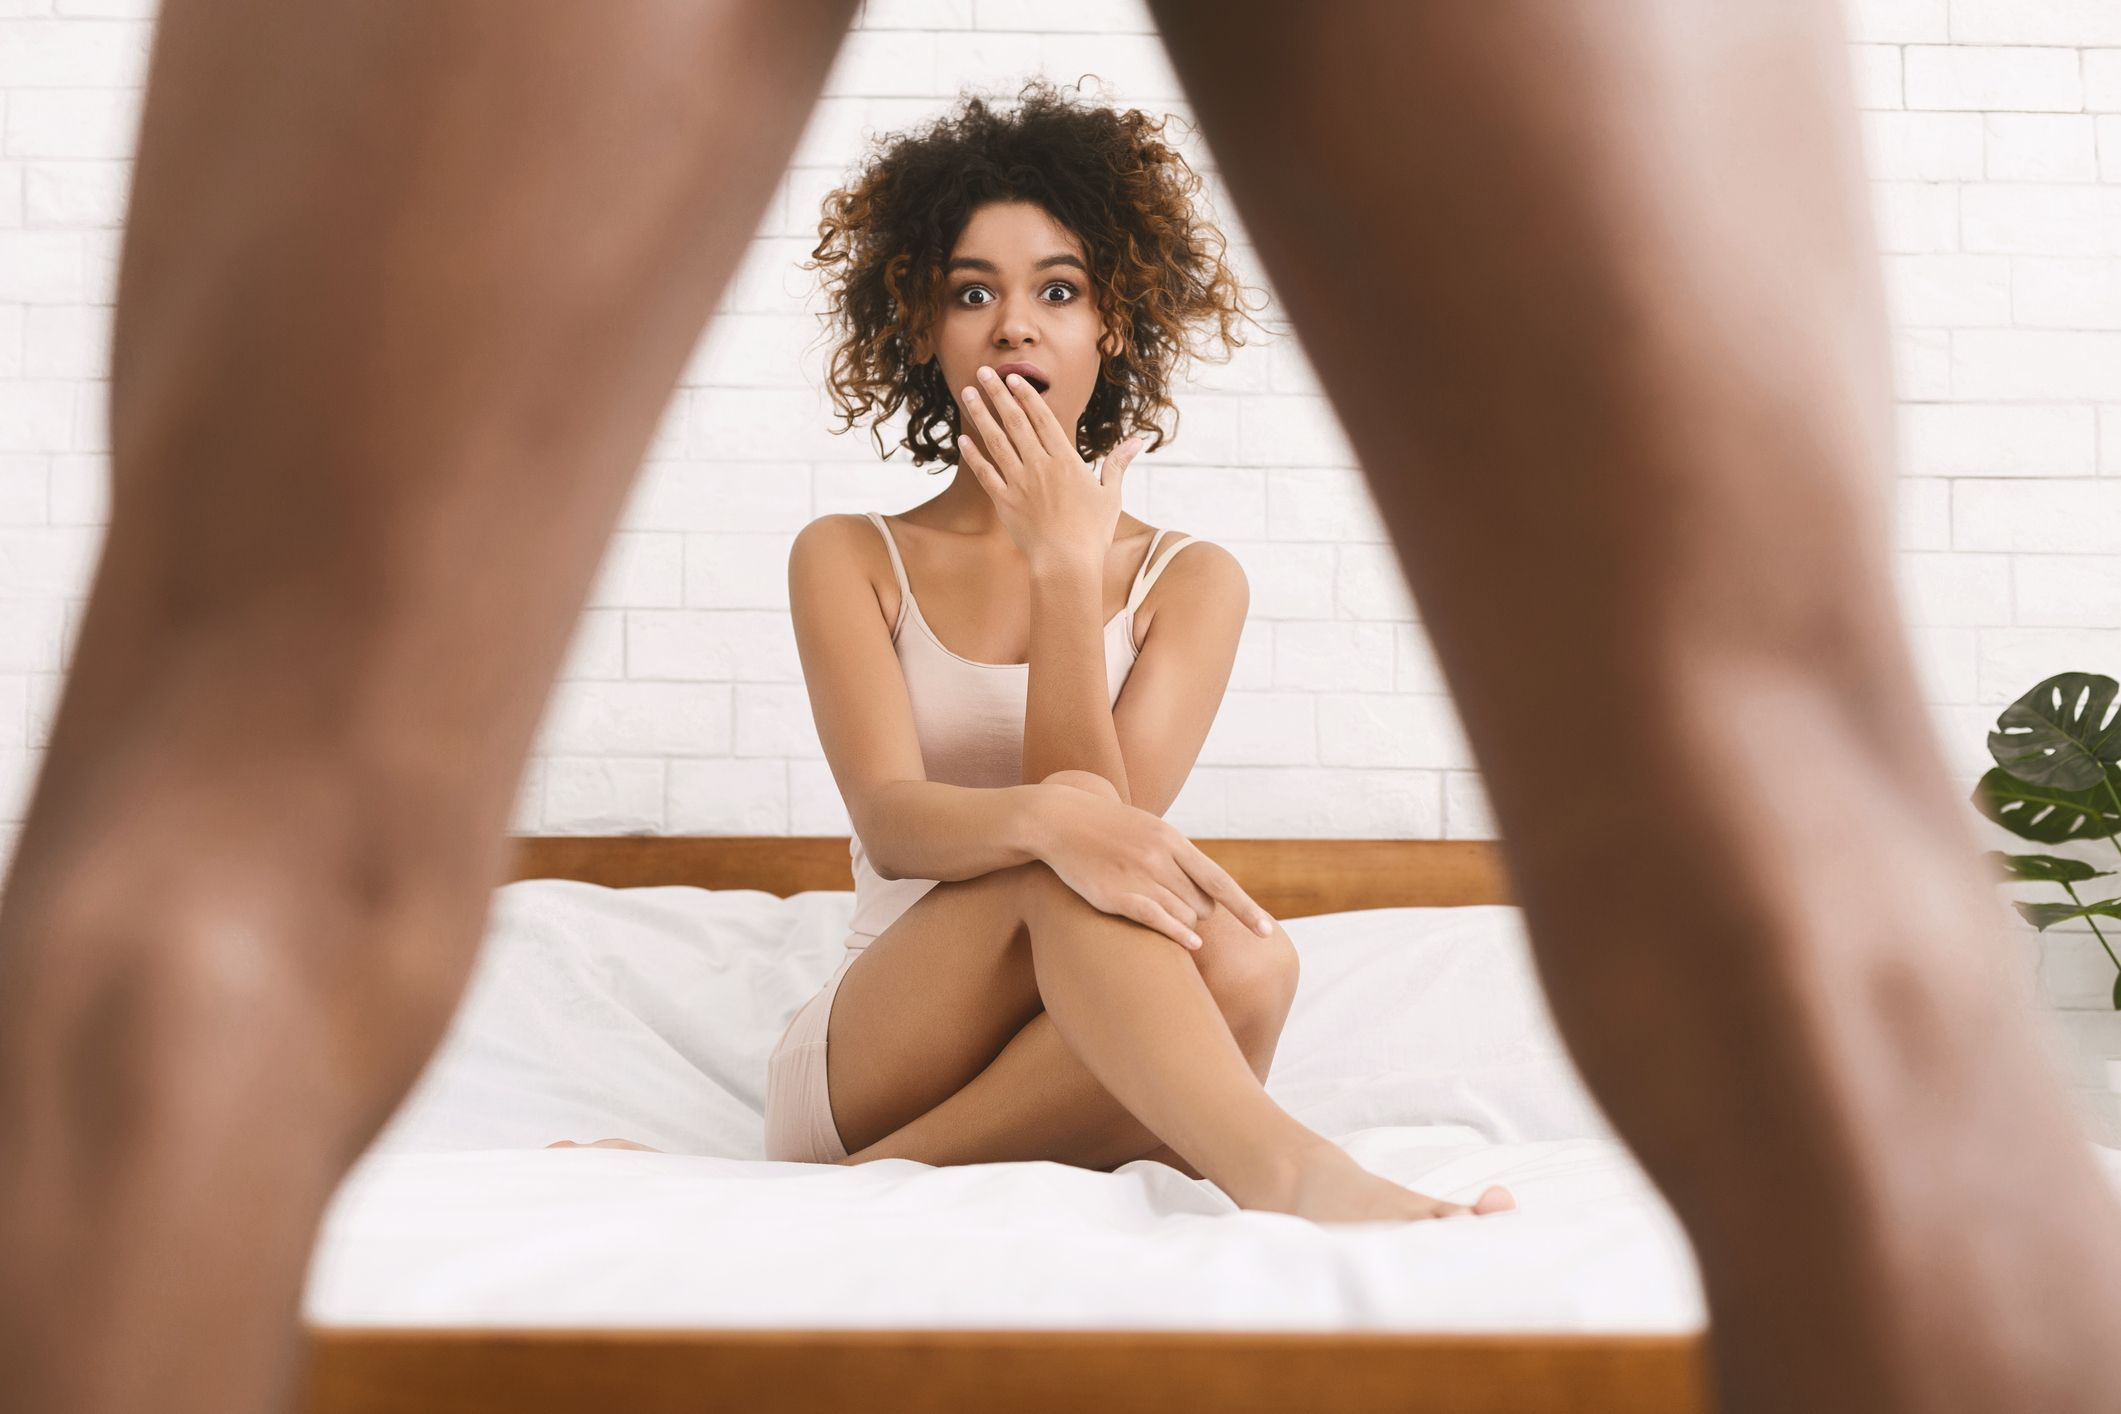 50 Hilarious Sex Stories From Real Women